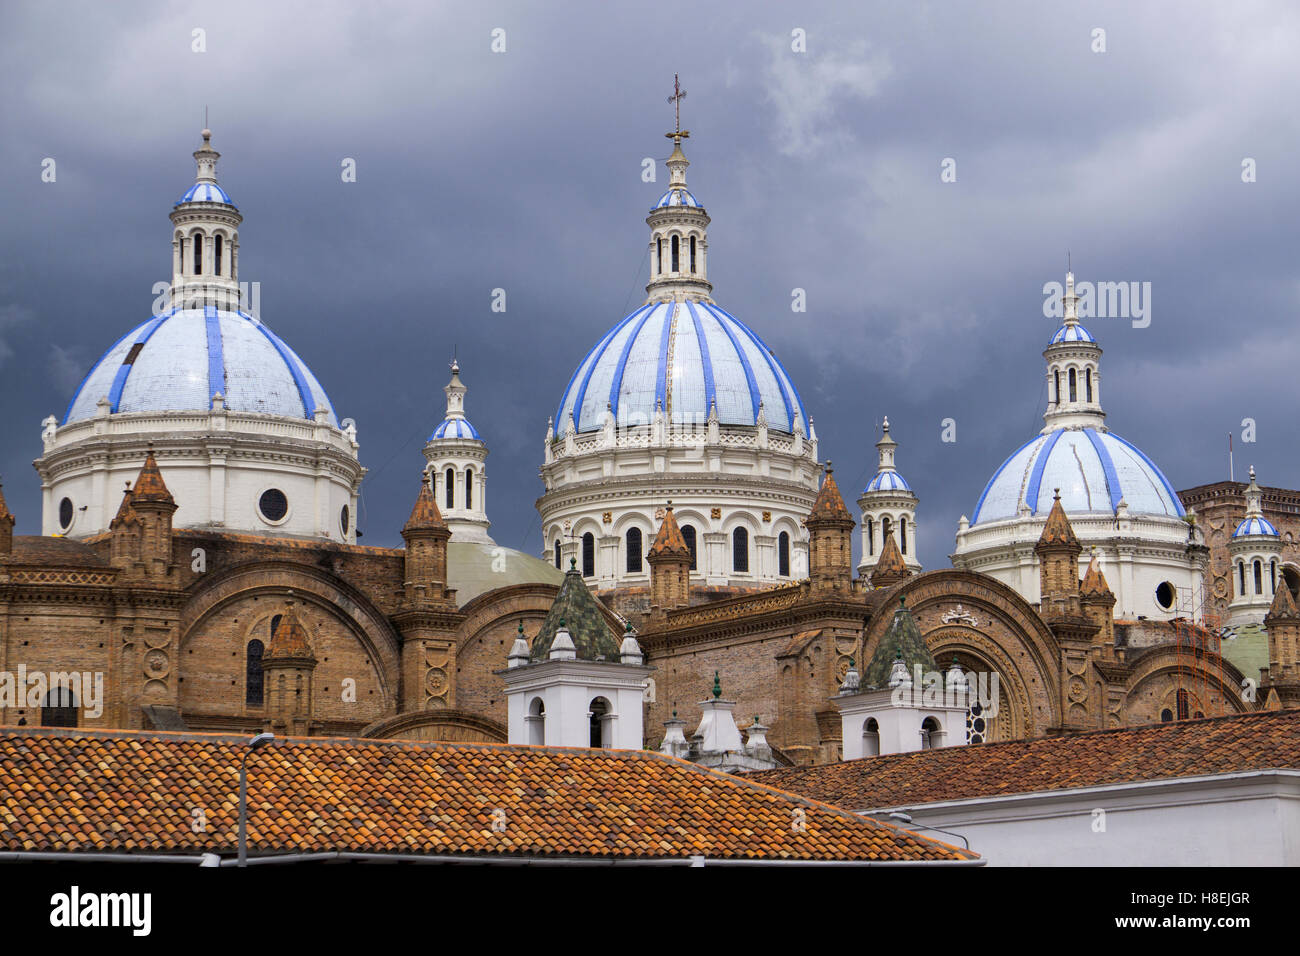 Cuenca cathedral, Cuenca, UNESCO World Heritage Site, Ecuador, South America - Stock Image